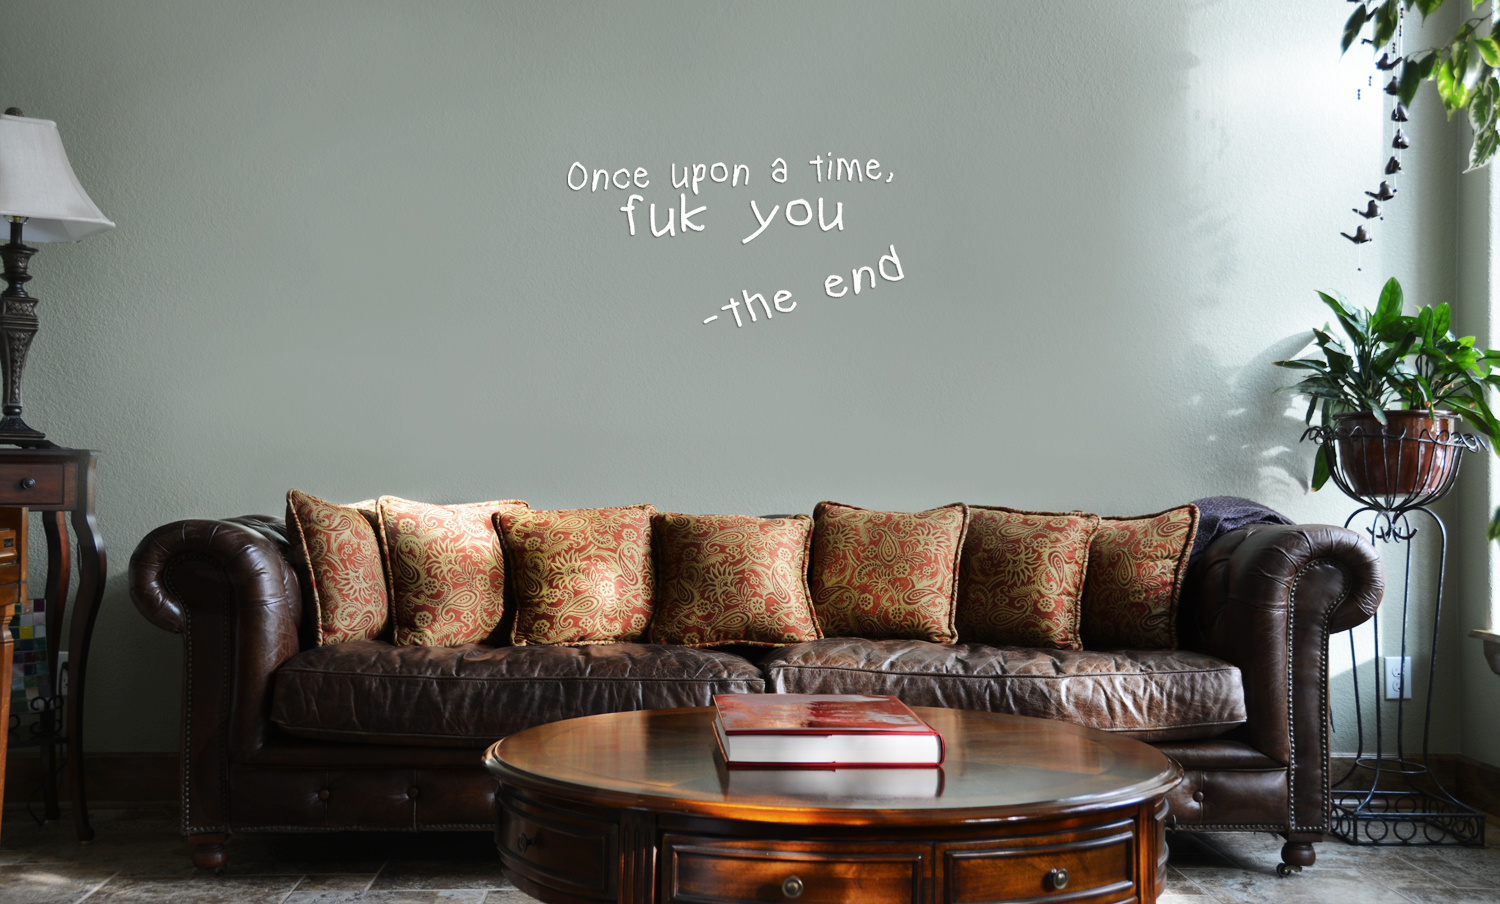 Once Upon A Time Fuk You Funny Story Vinyl Wall Mural Decal Home